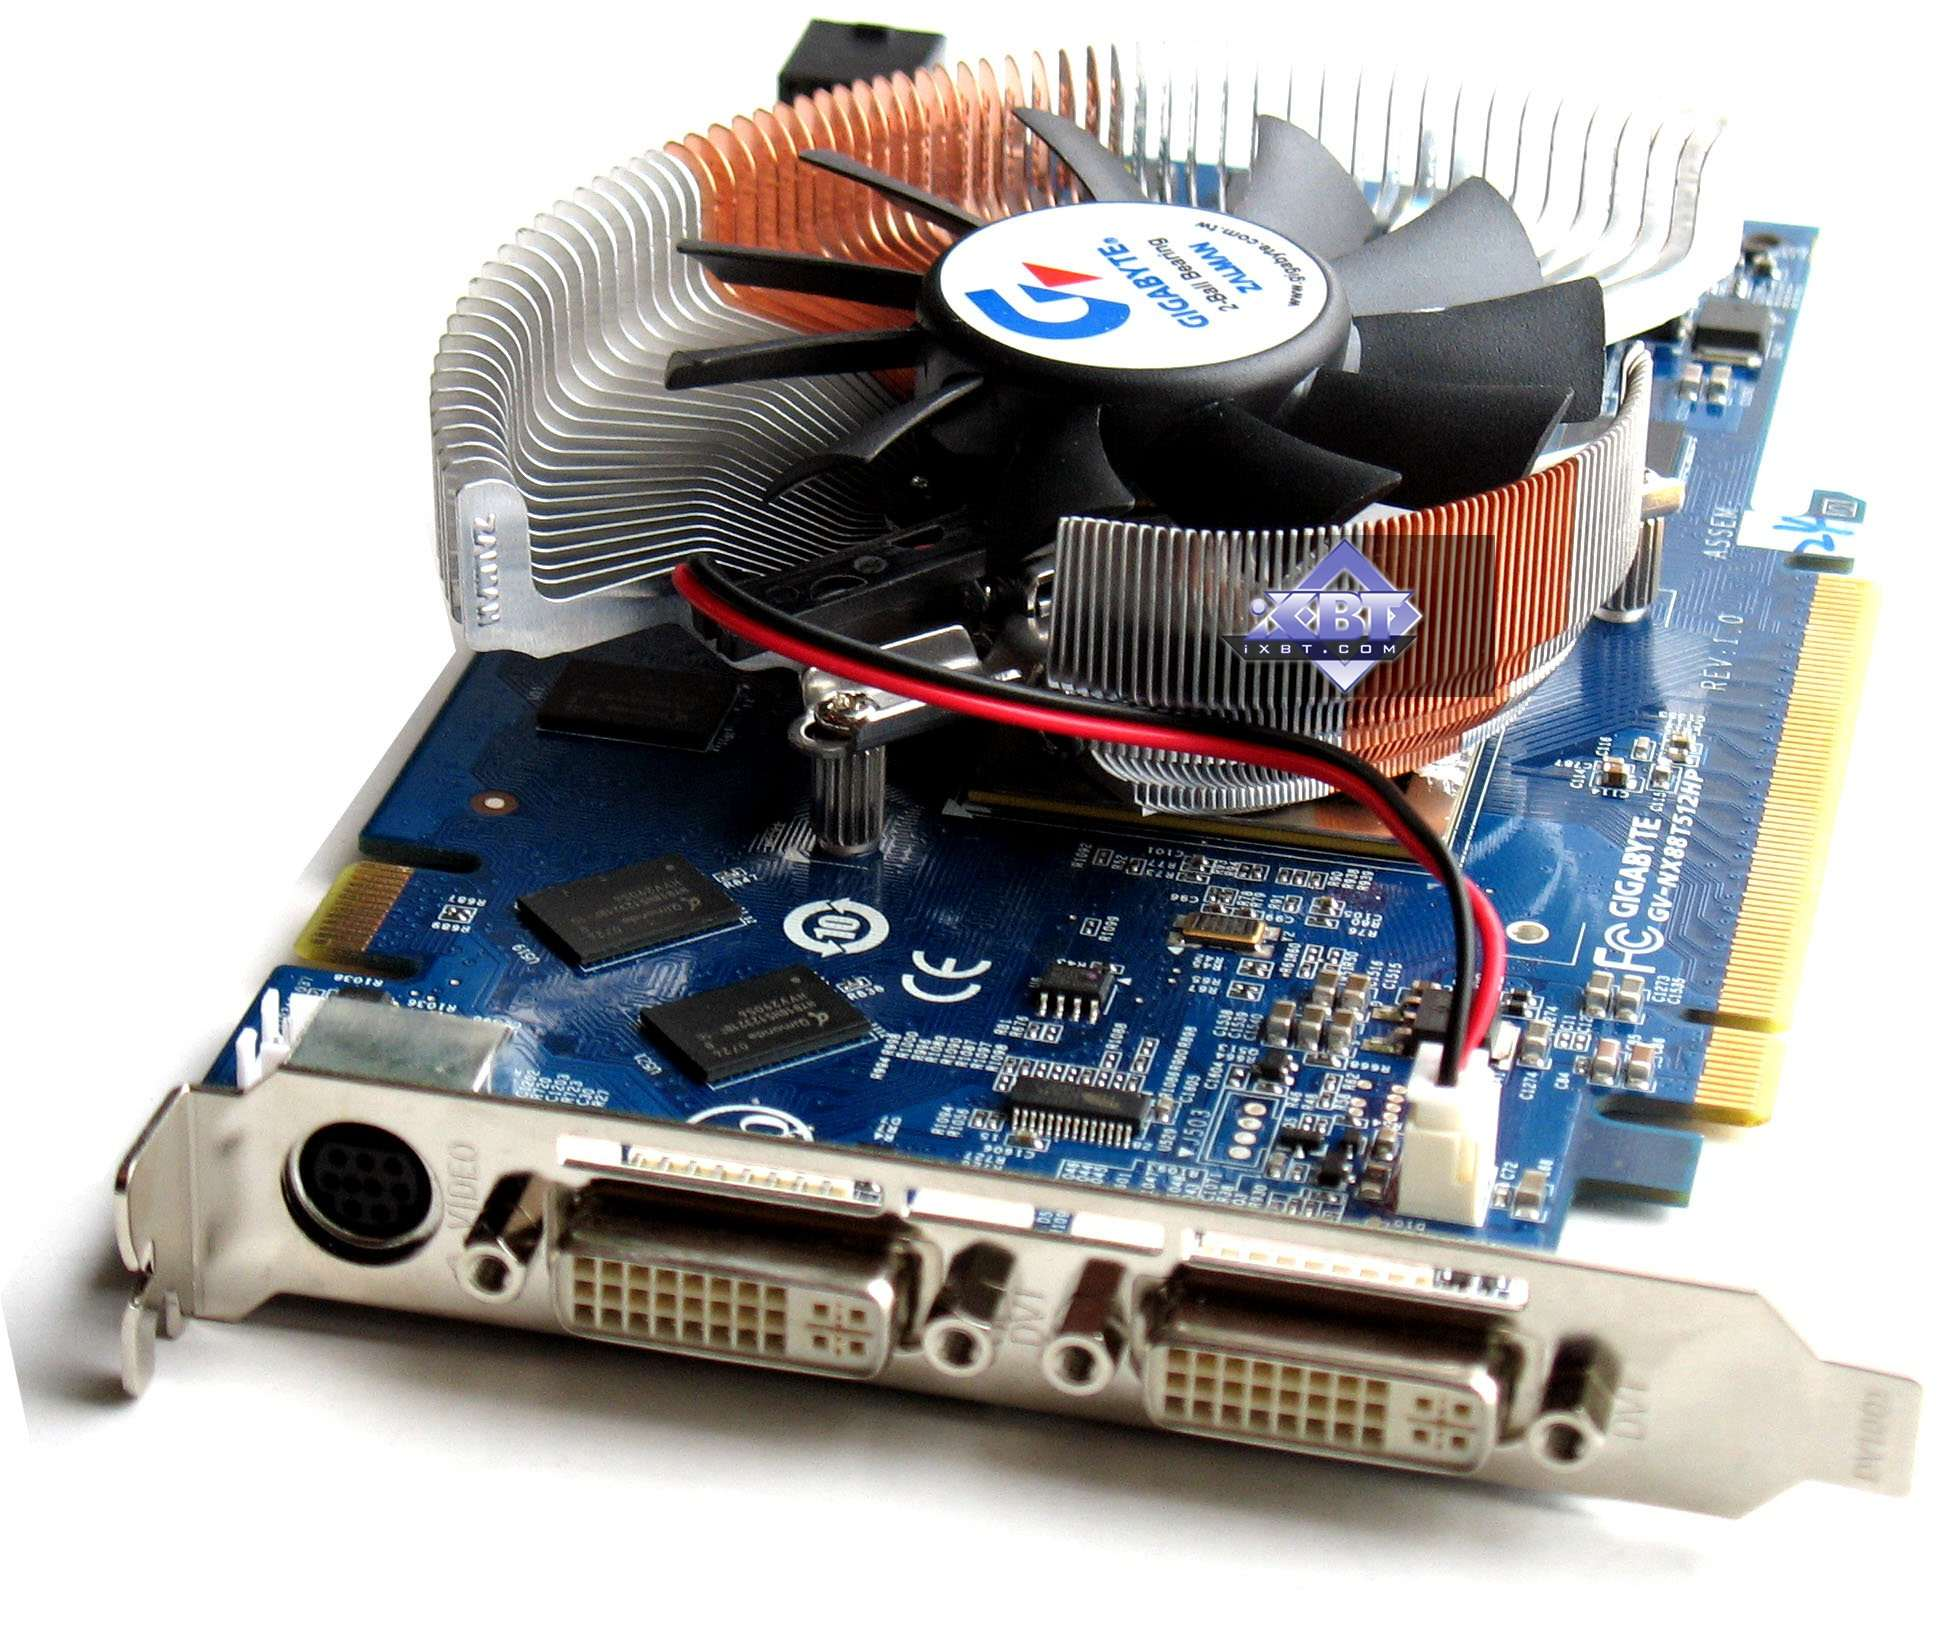 For a video card, a 512-bit bus is a lot or a little